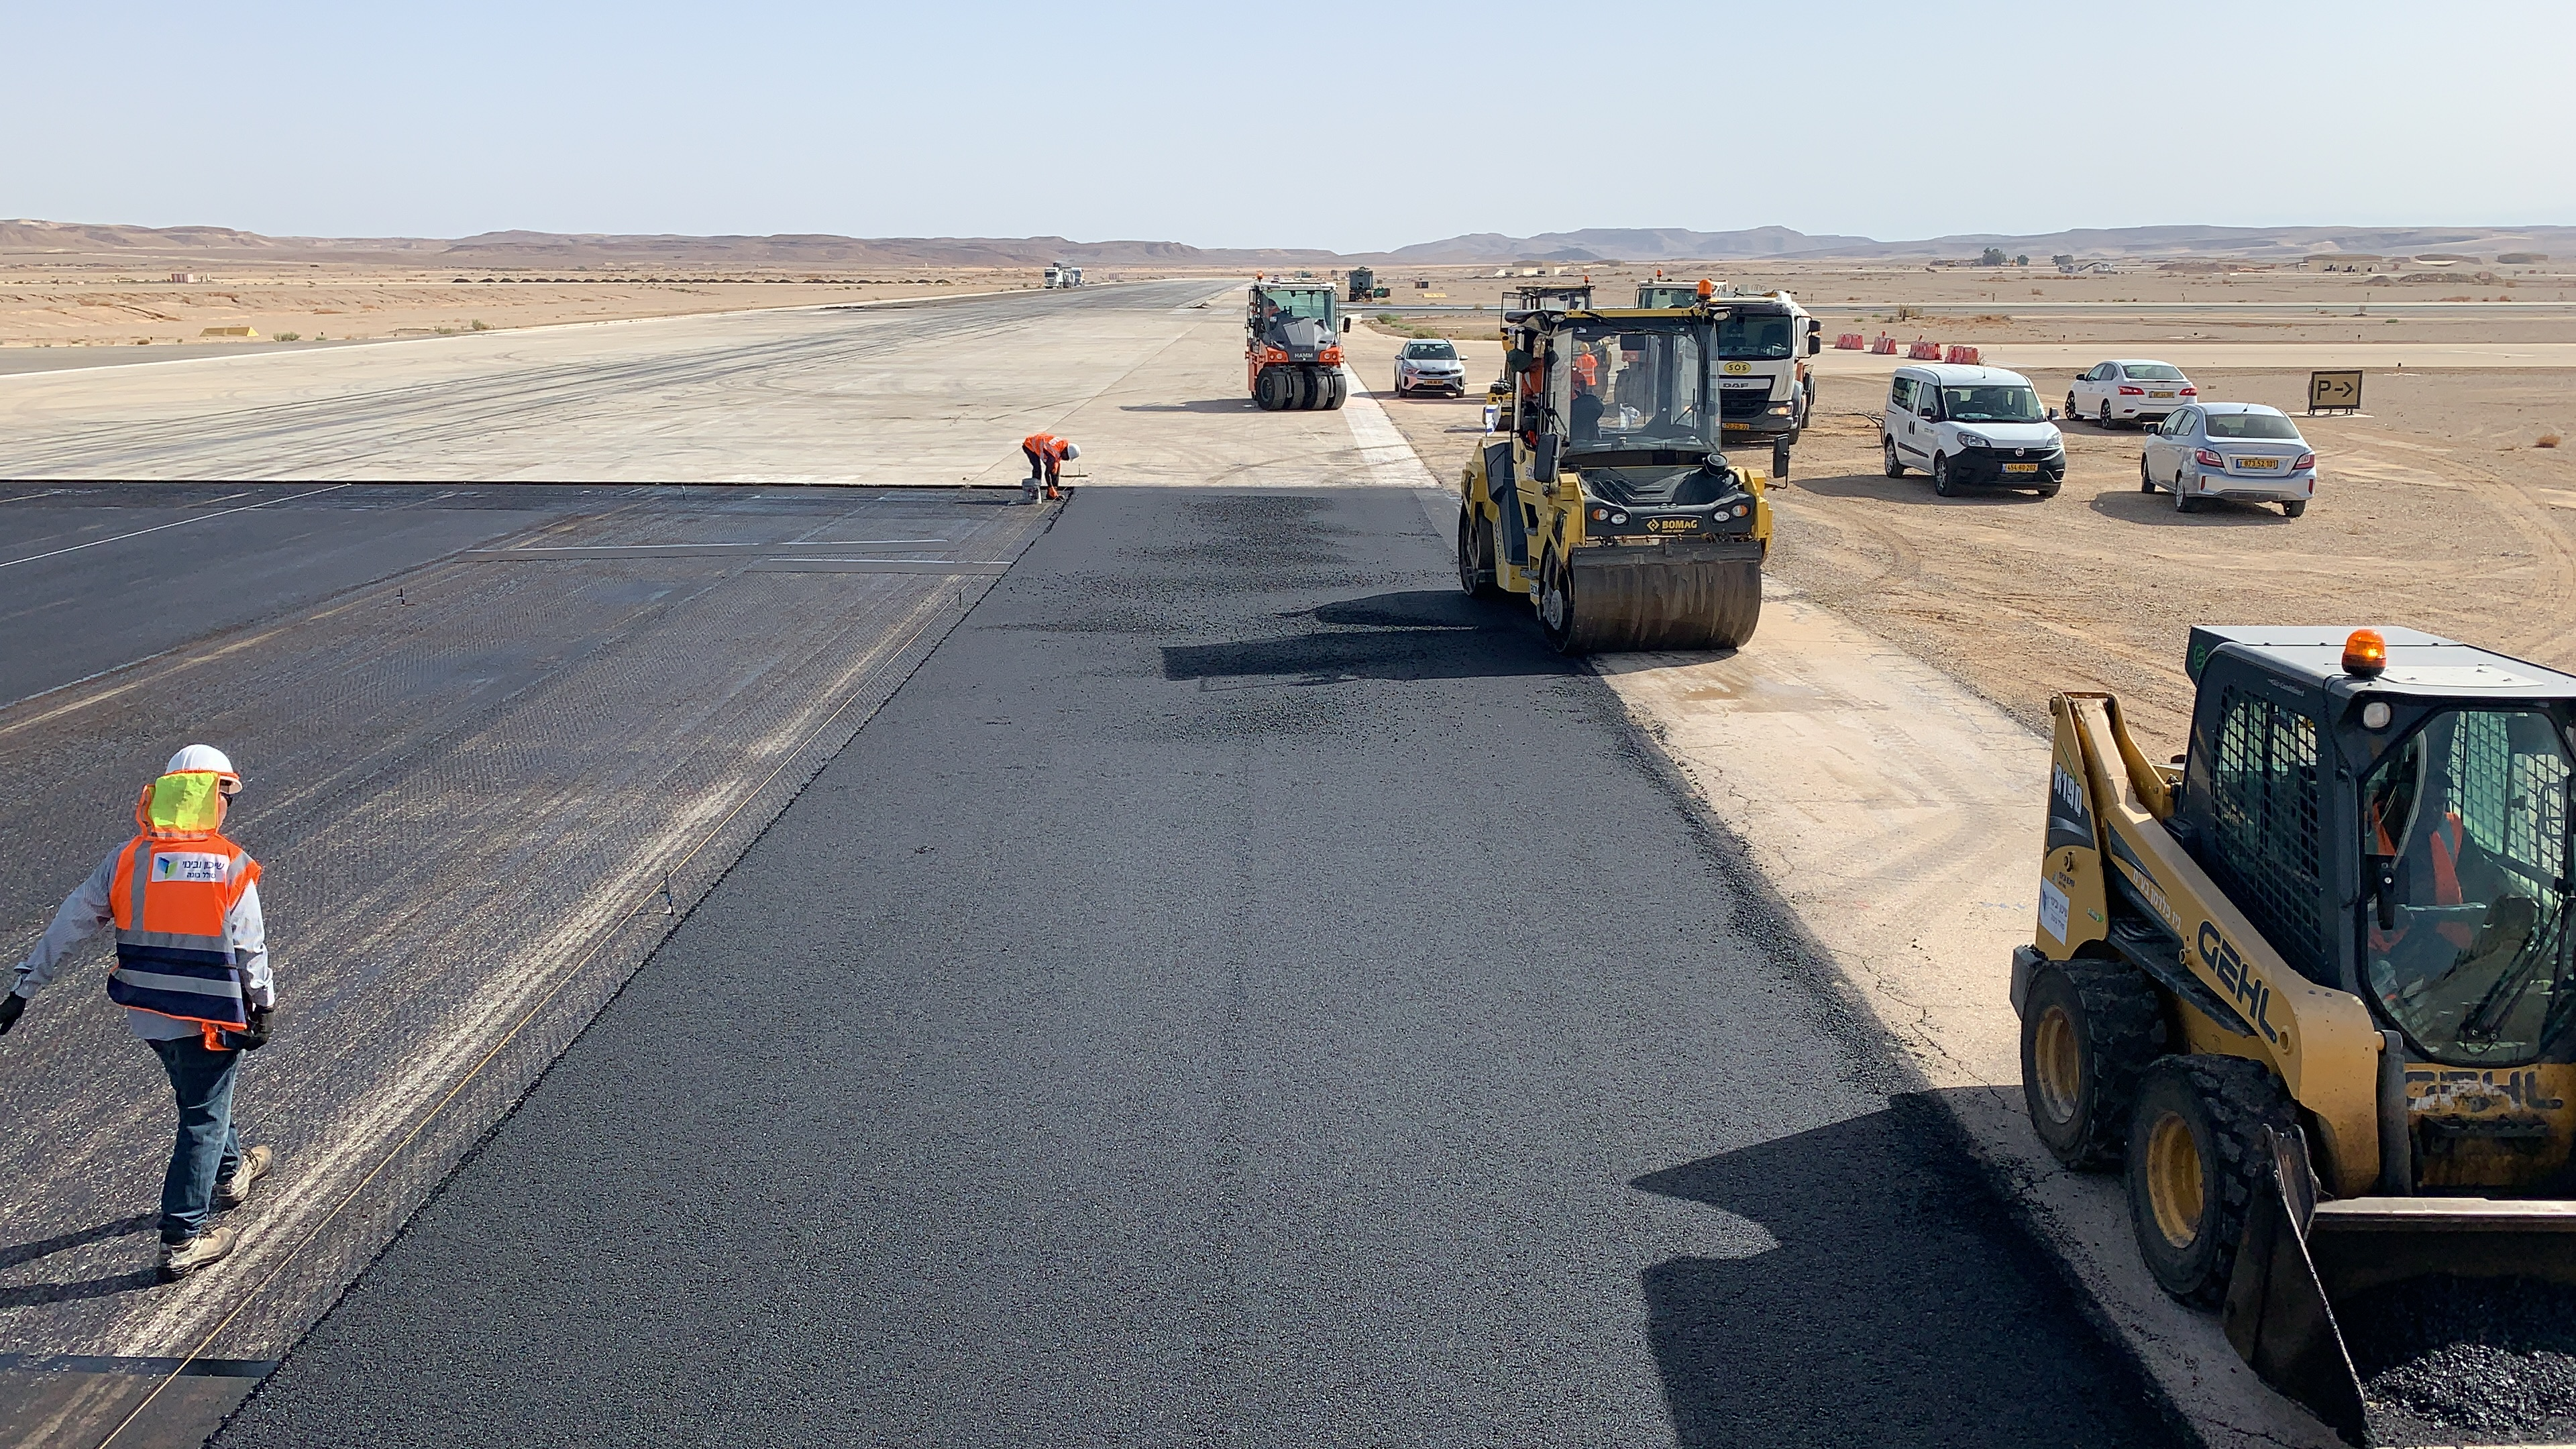 Conti Federal Completes Runway and Taxiway Renovation at Ovda Air Force Base in Israel